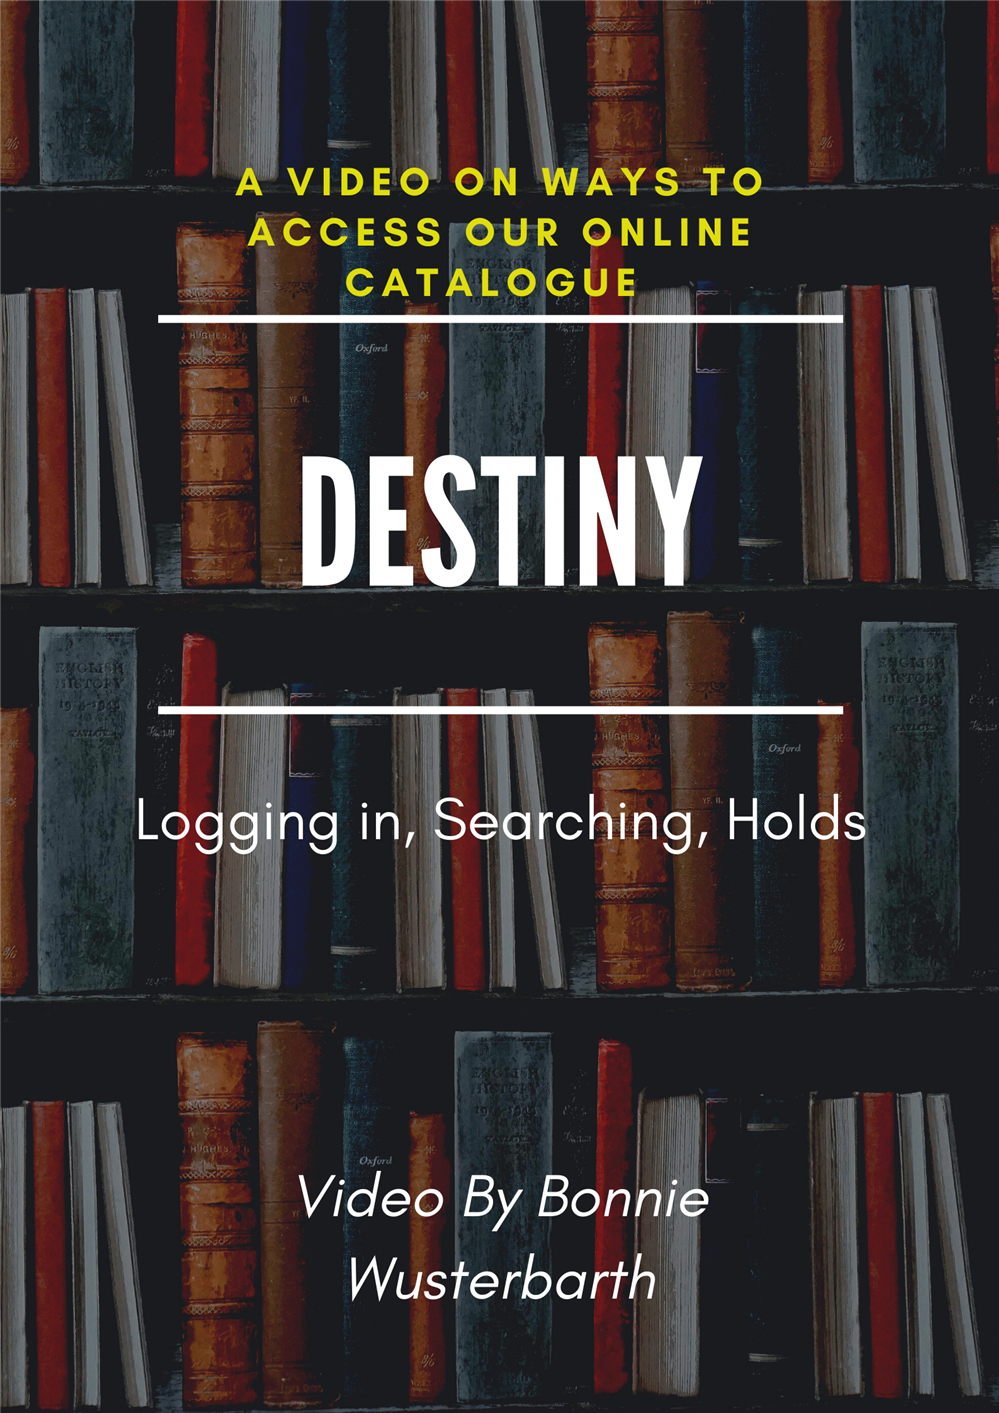 Destiny - Logging in, Searching, Holds!